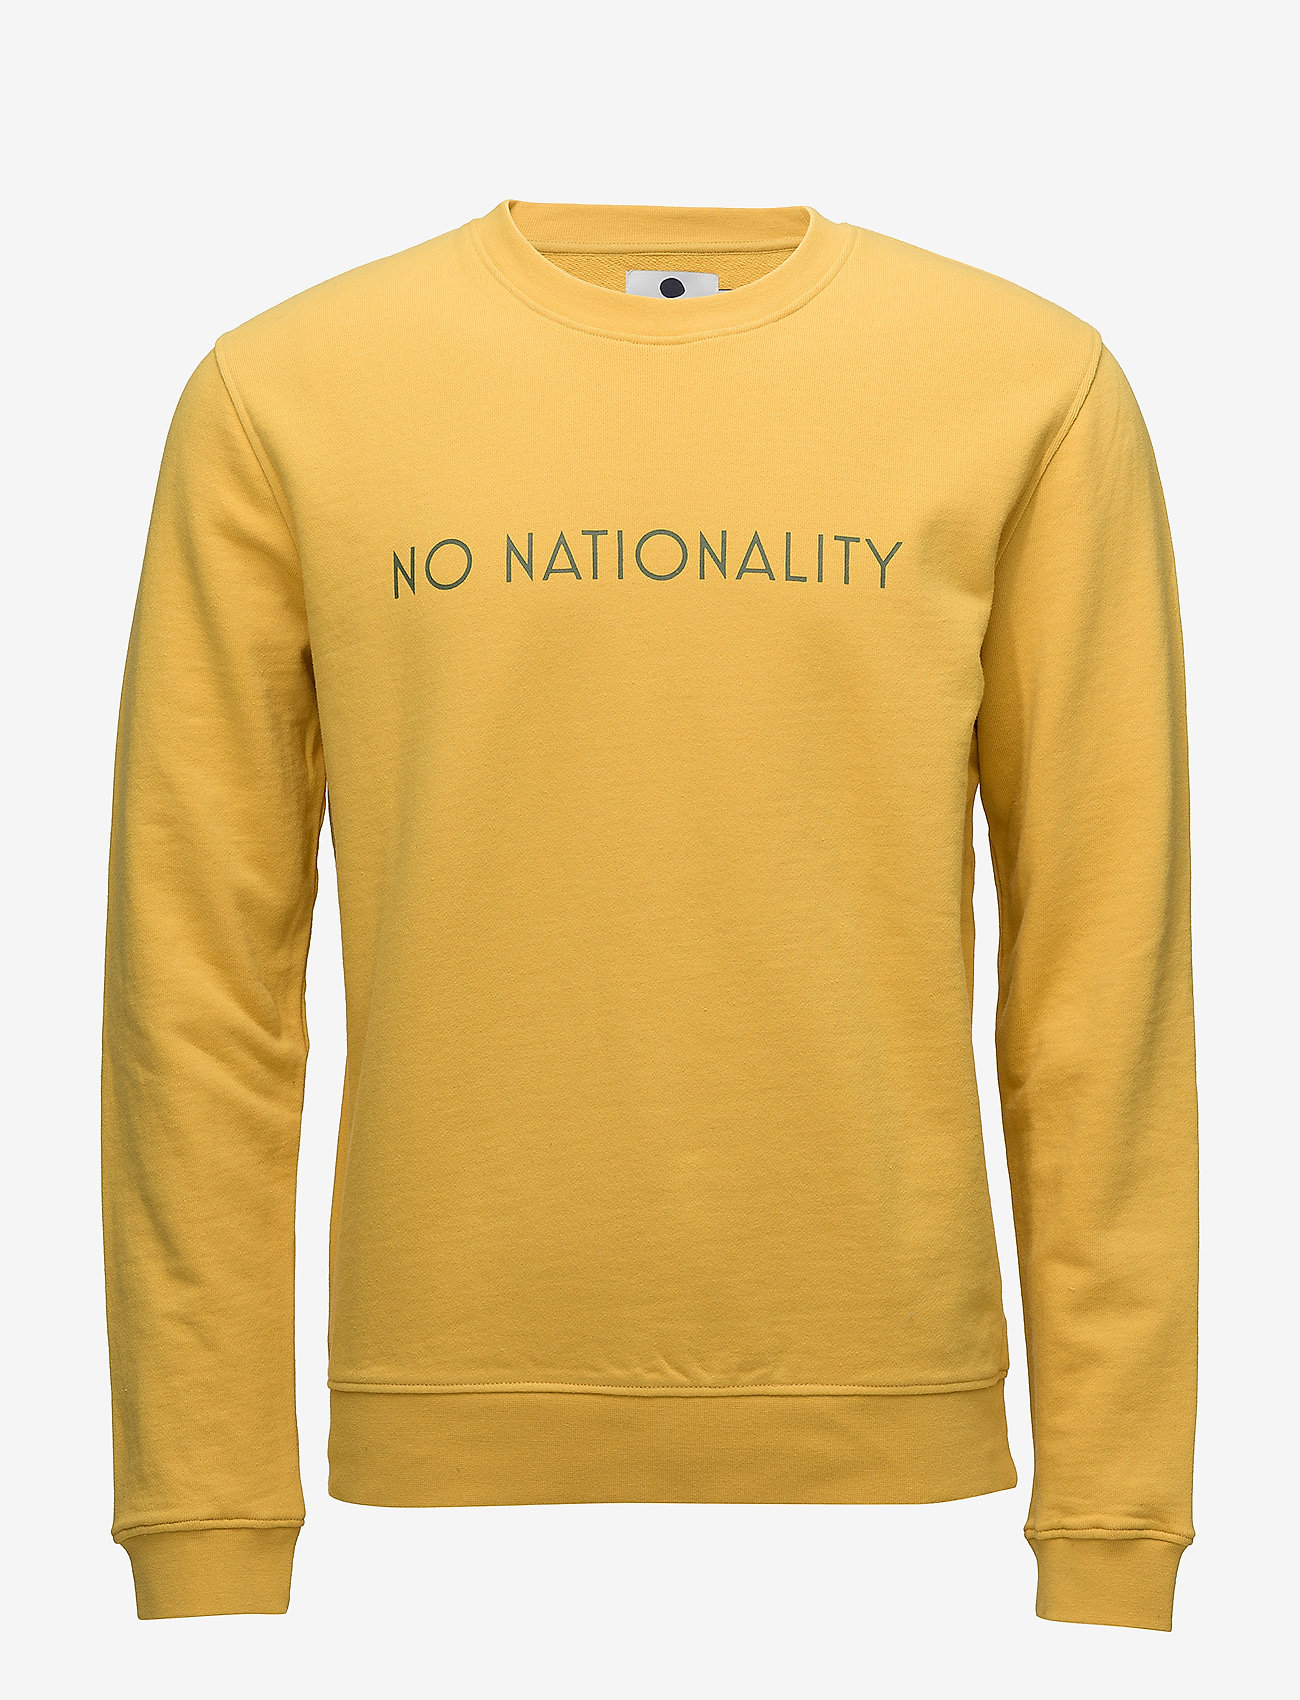 NN07 - Matteo logo 3355 - sweats - yellow